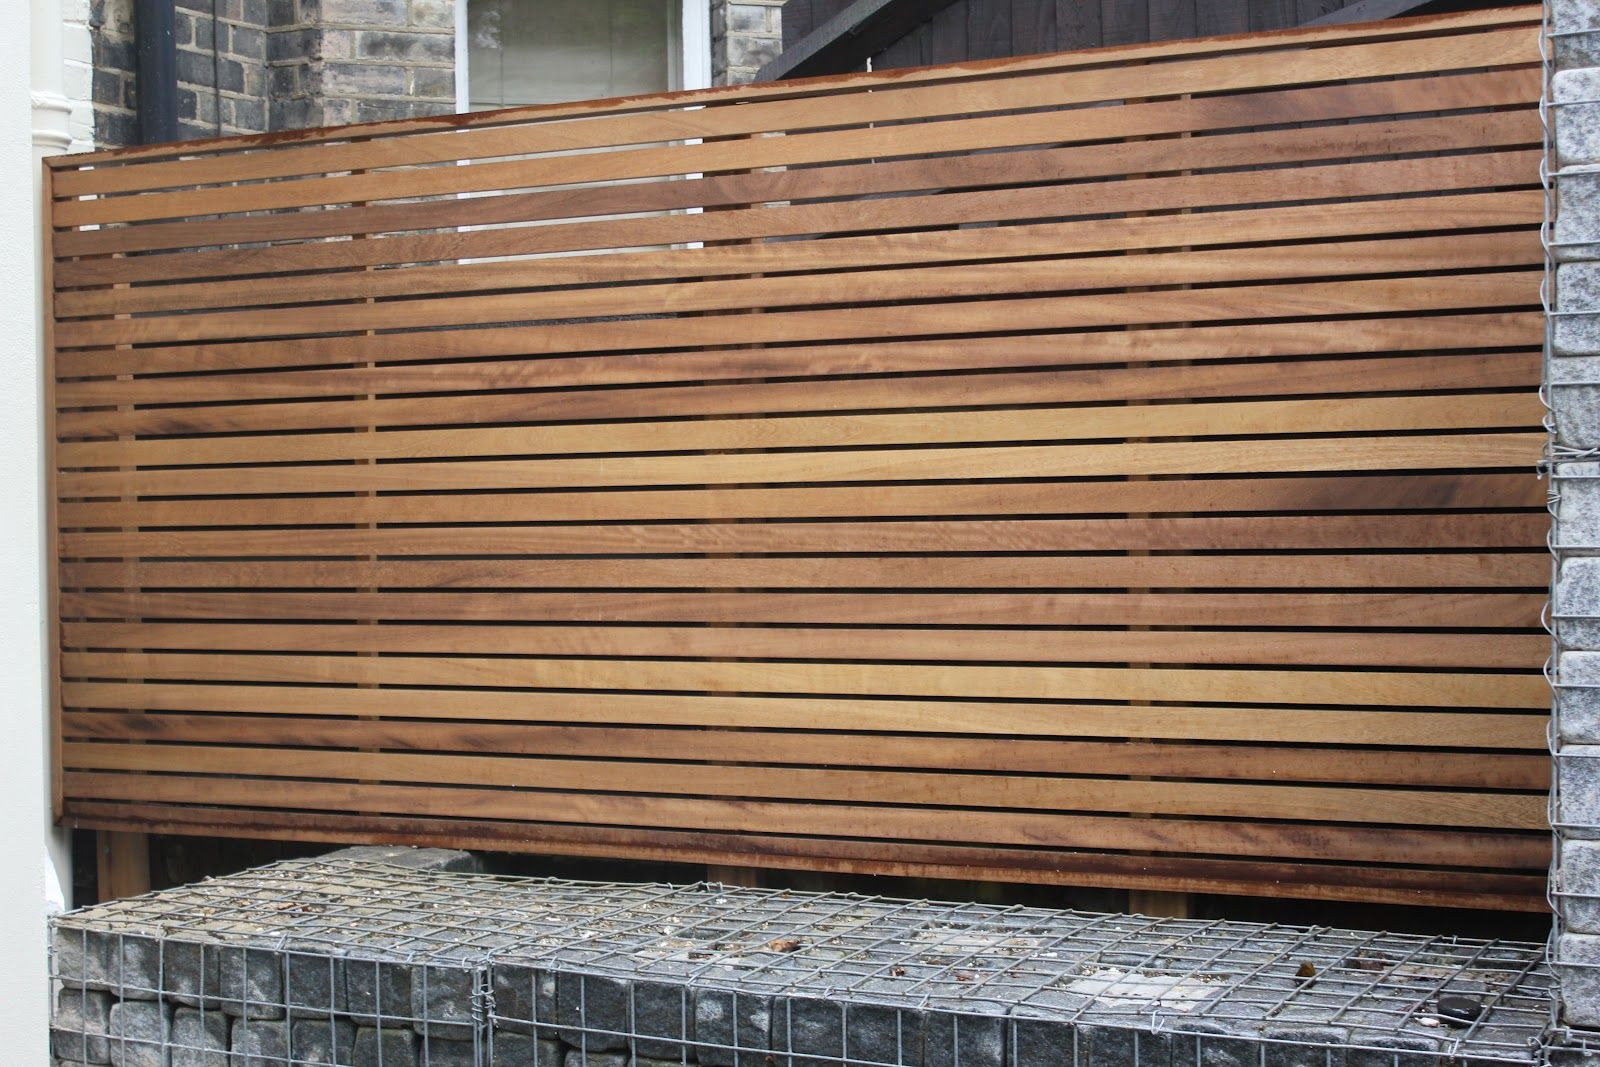 Garden Wooden Fence Designs wood fence designs wood fence design Contemporary Wooden Wall Cladding And Fencing Ideas